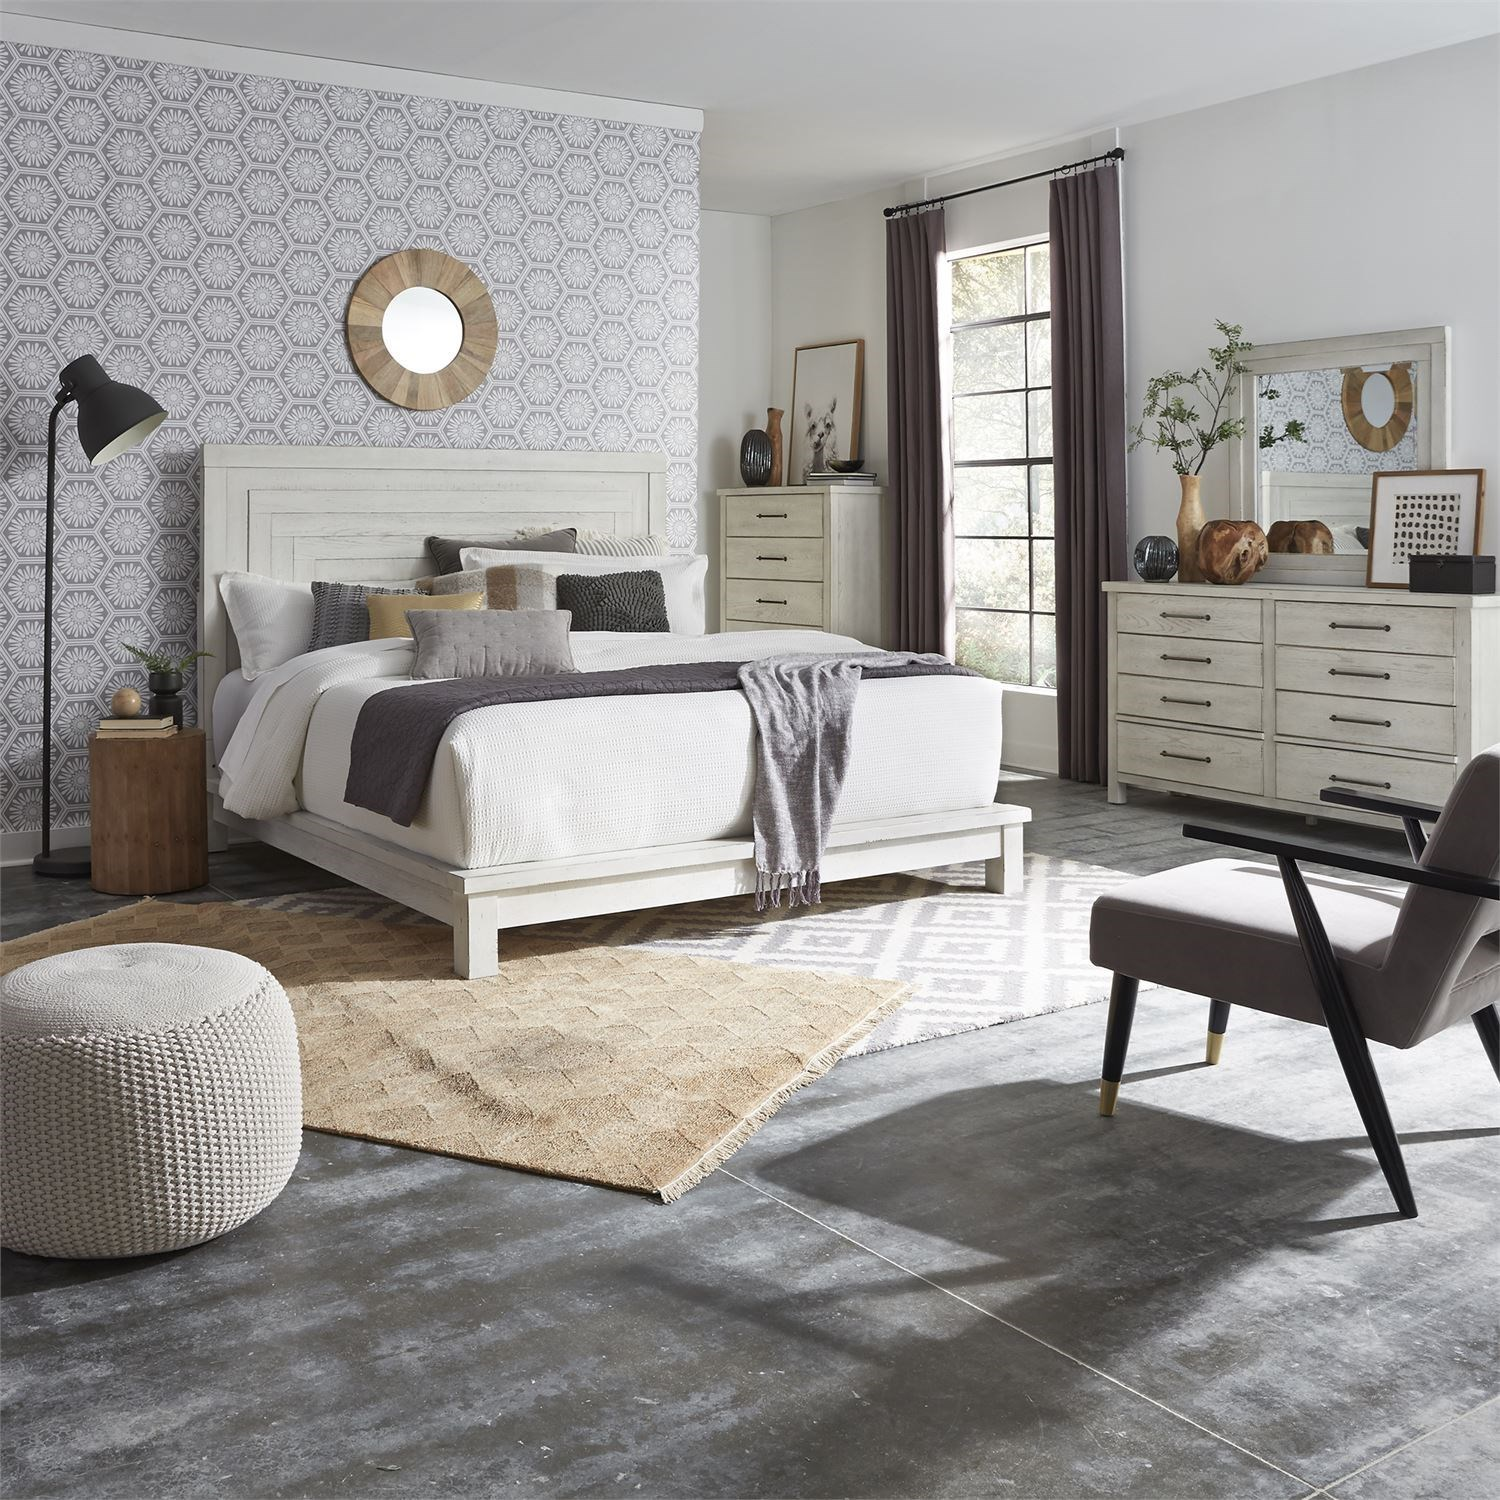 Modern Farmhouse Queen Bedroom Group by Liberty Furniture at Beck's Furniture